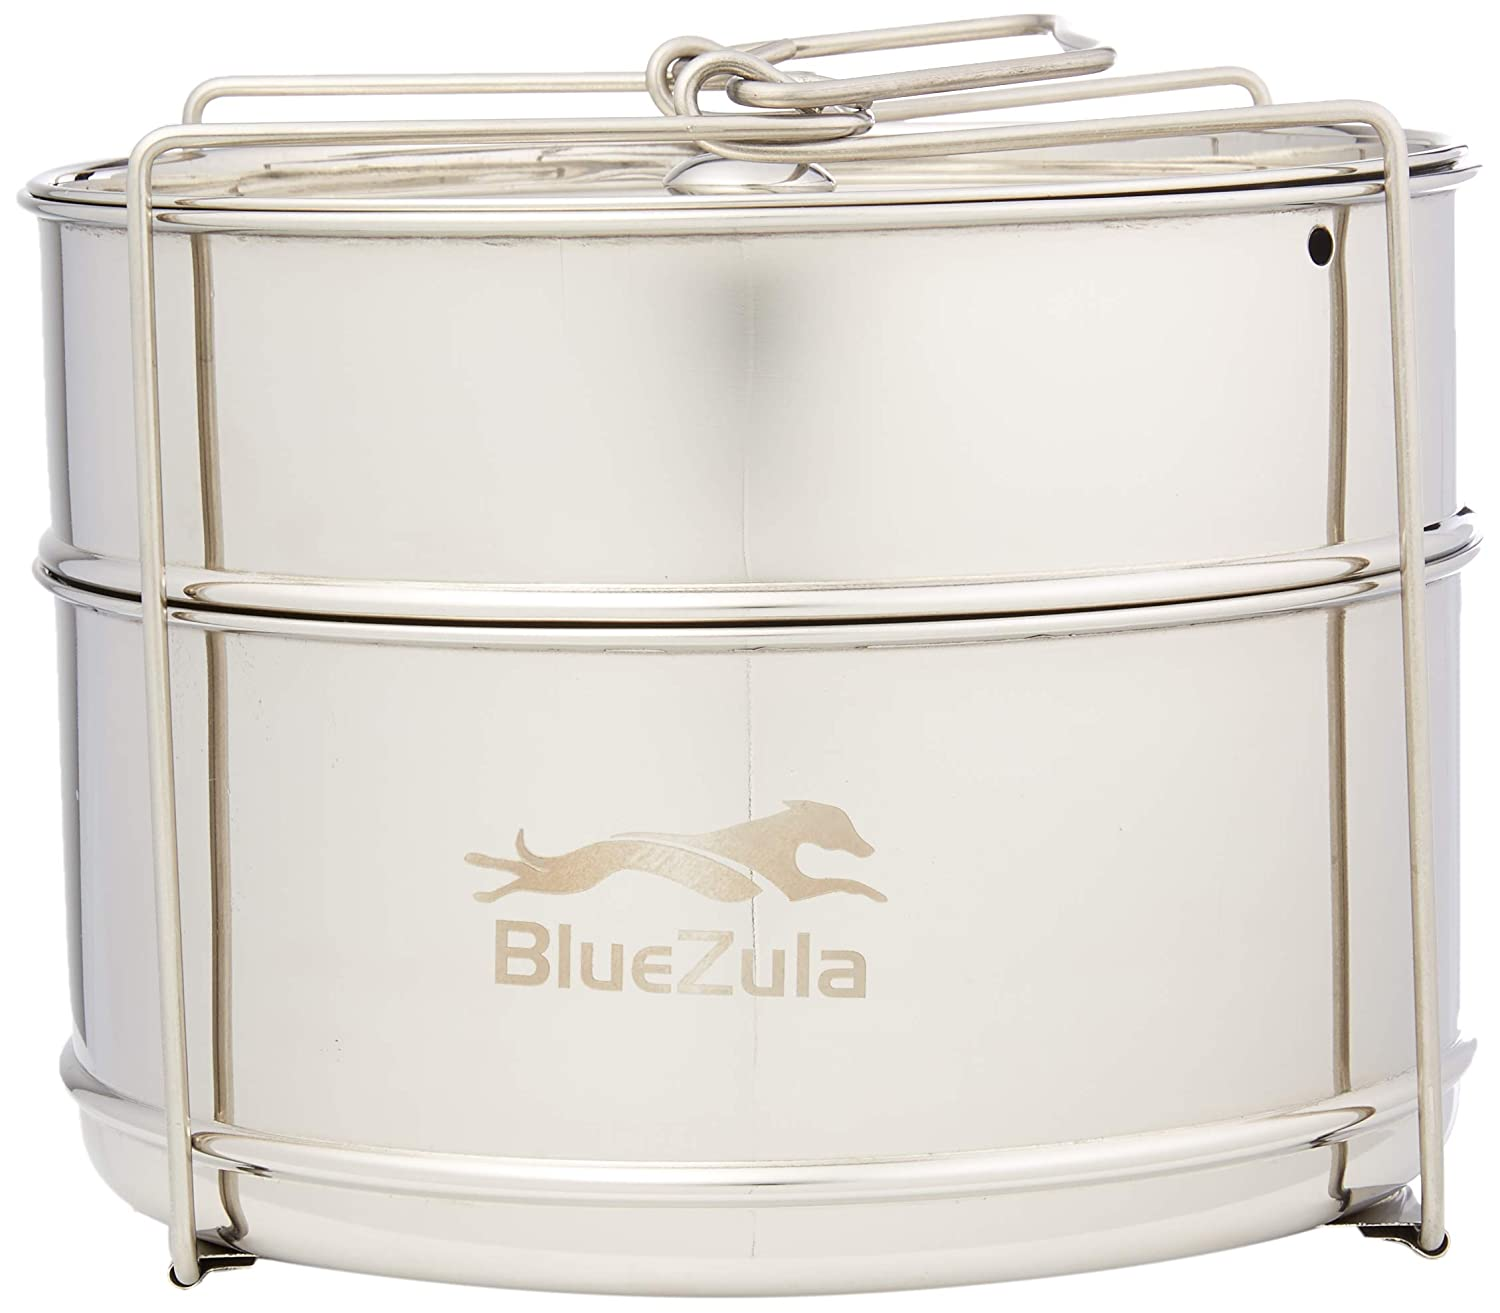 BlueZula Stackable Stainless Steel Steamer Insert Pans for Instant Pot | 2 Tier Steamer Baskets with Handle | Ideal for Vegetable, Meat, Fish, and Rice | Fits 5, 6 & 8 Quart Instant Pot